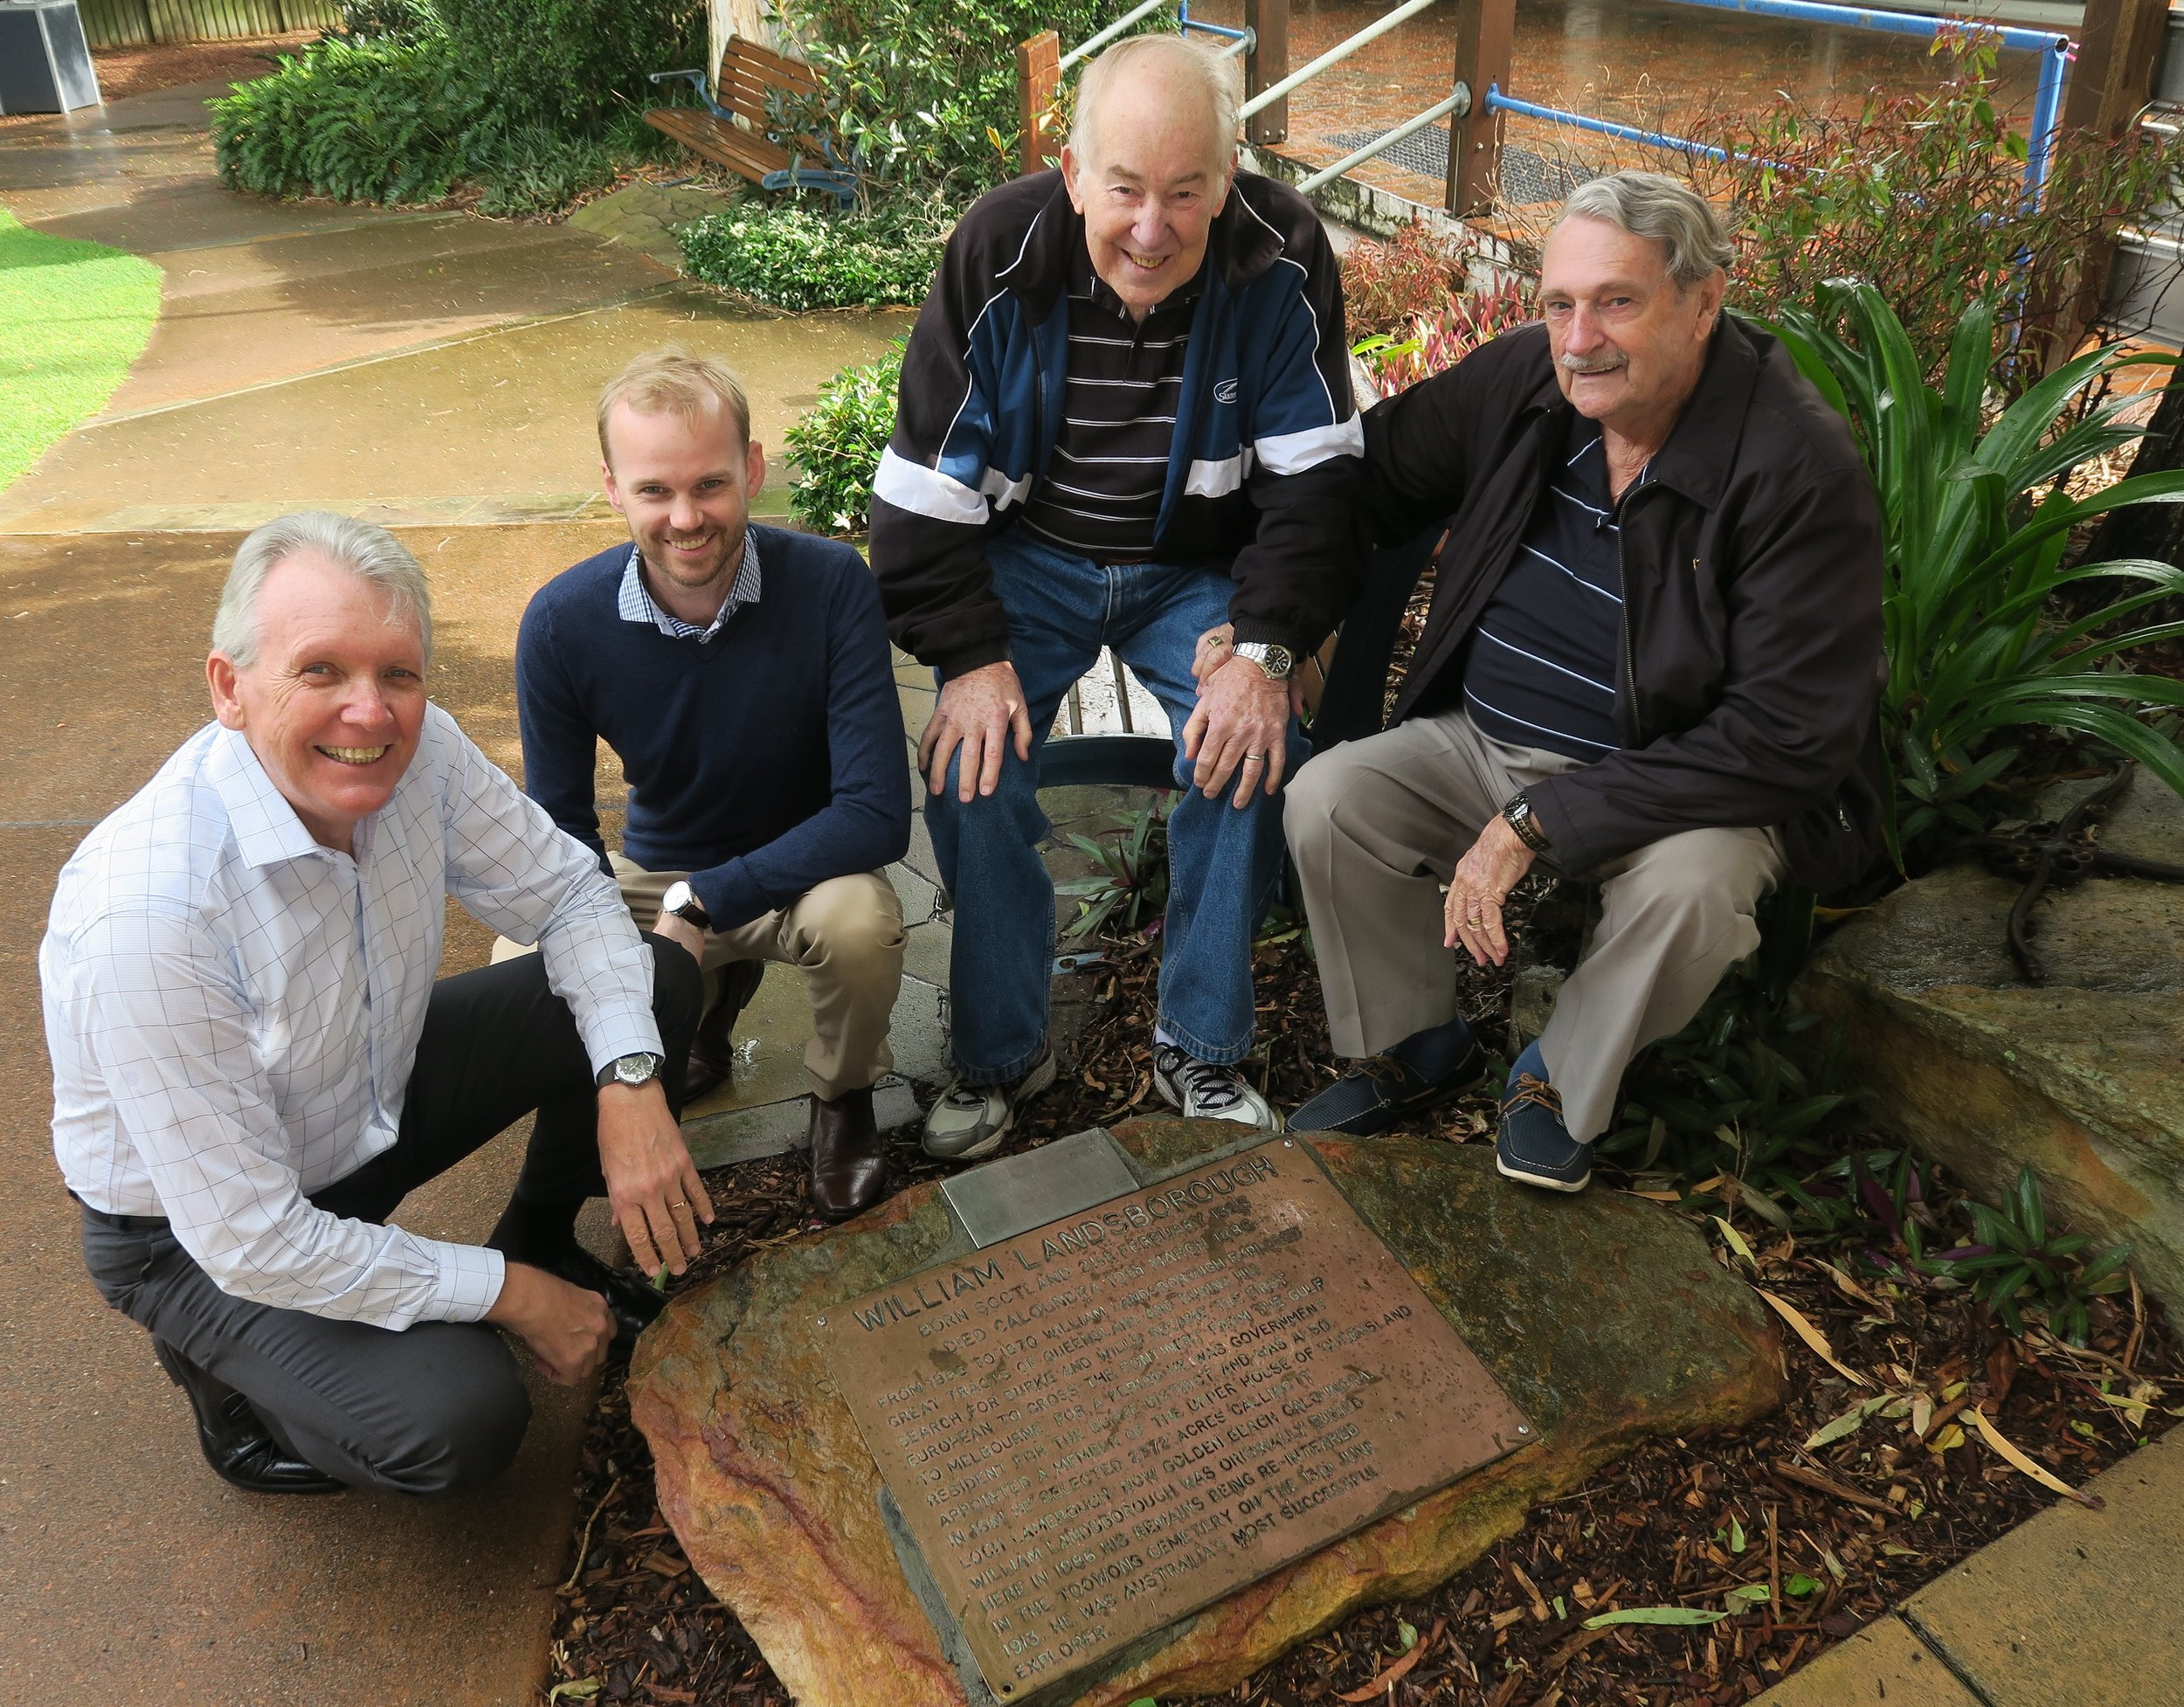 Mark with Caloundra Residents Association Inc members Brady Sullivan, Ian Smyth (President) and Peter Ryan (Vice-President) at the deteriorating William Landsborough Memorial Plaque in Golden Beach.